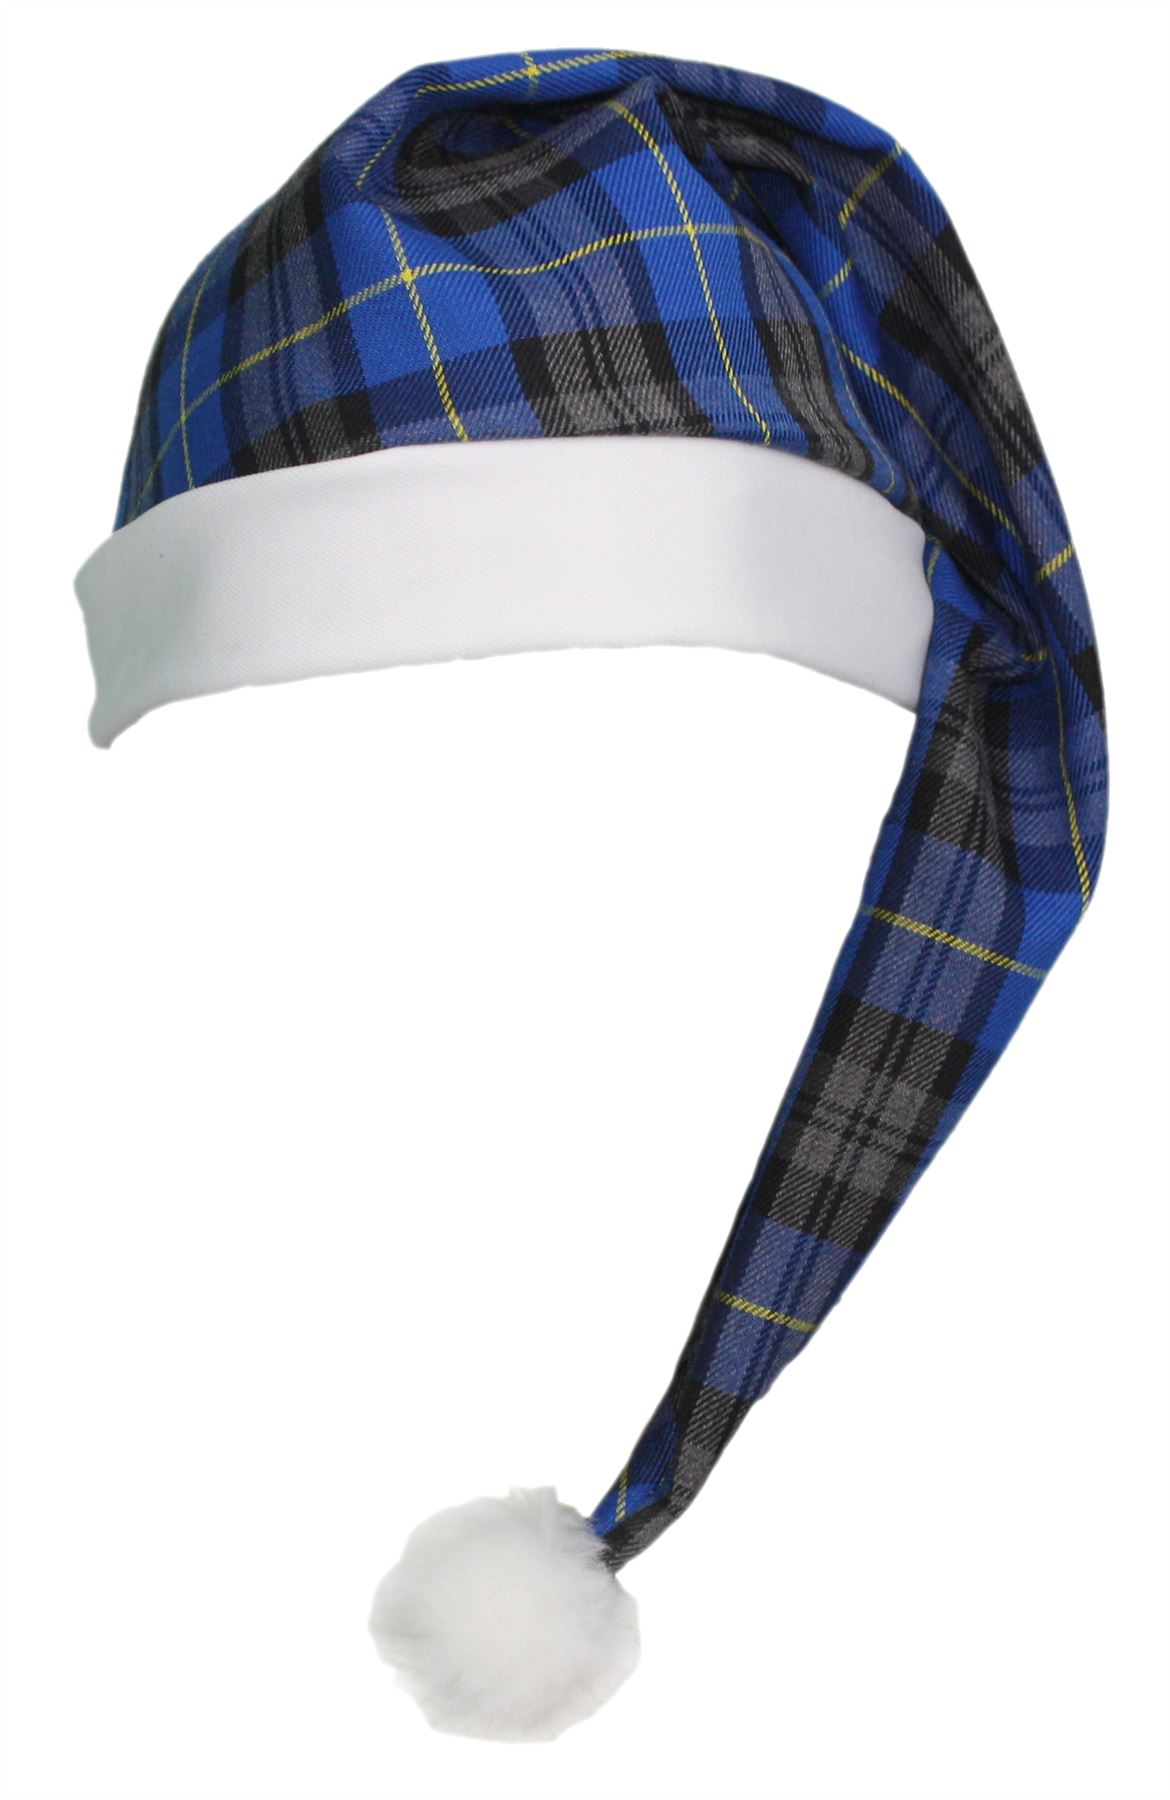 Wee Willy Winkie Winky lunga notte Hat Cap Robert la Notte di Burns Costume